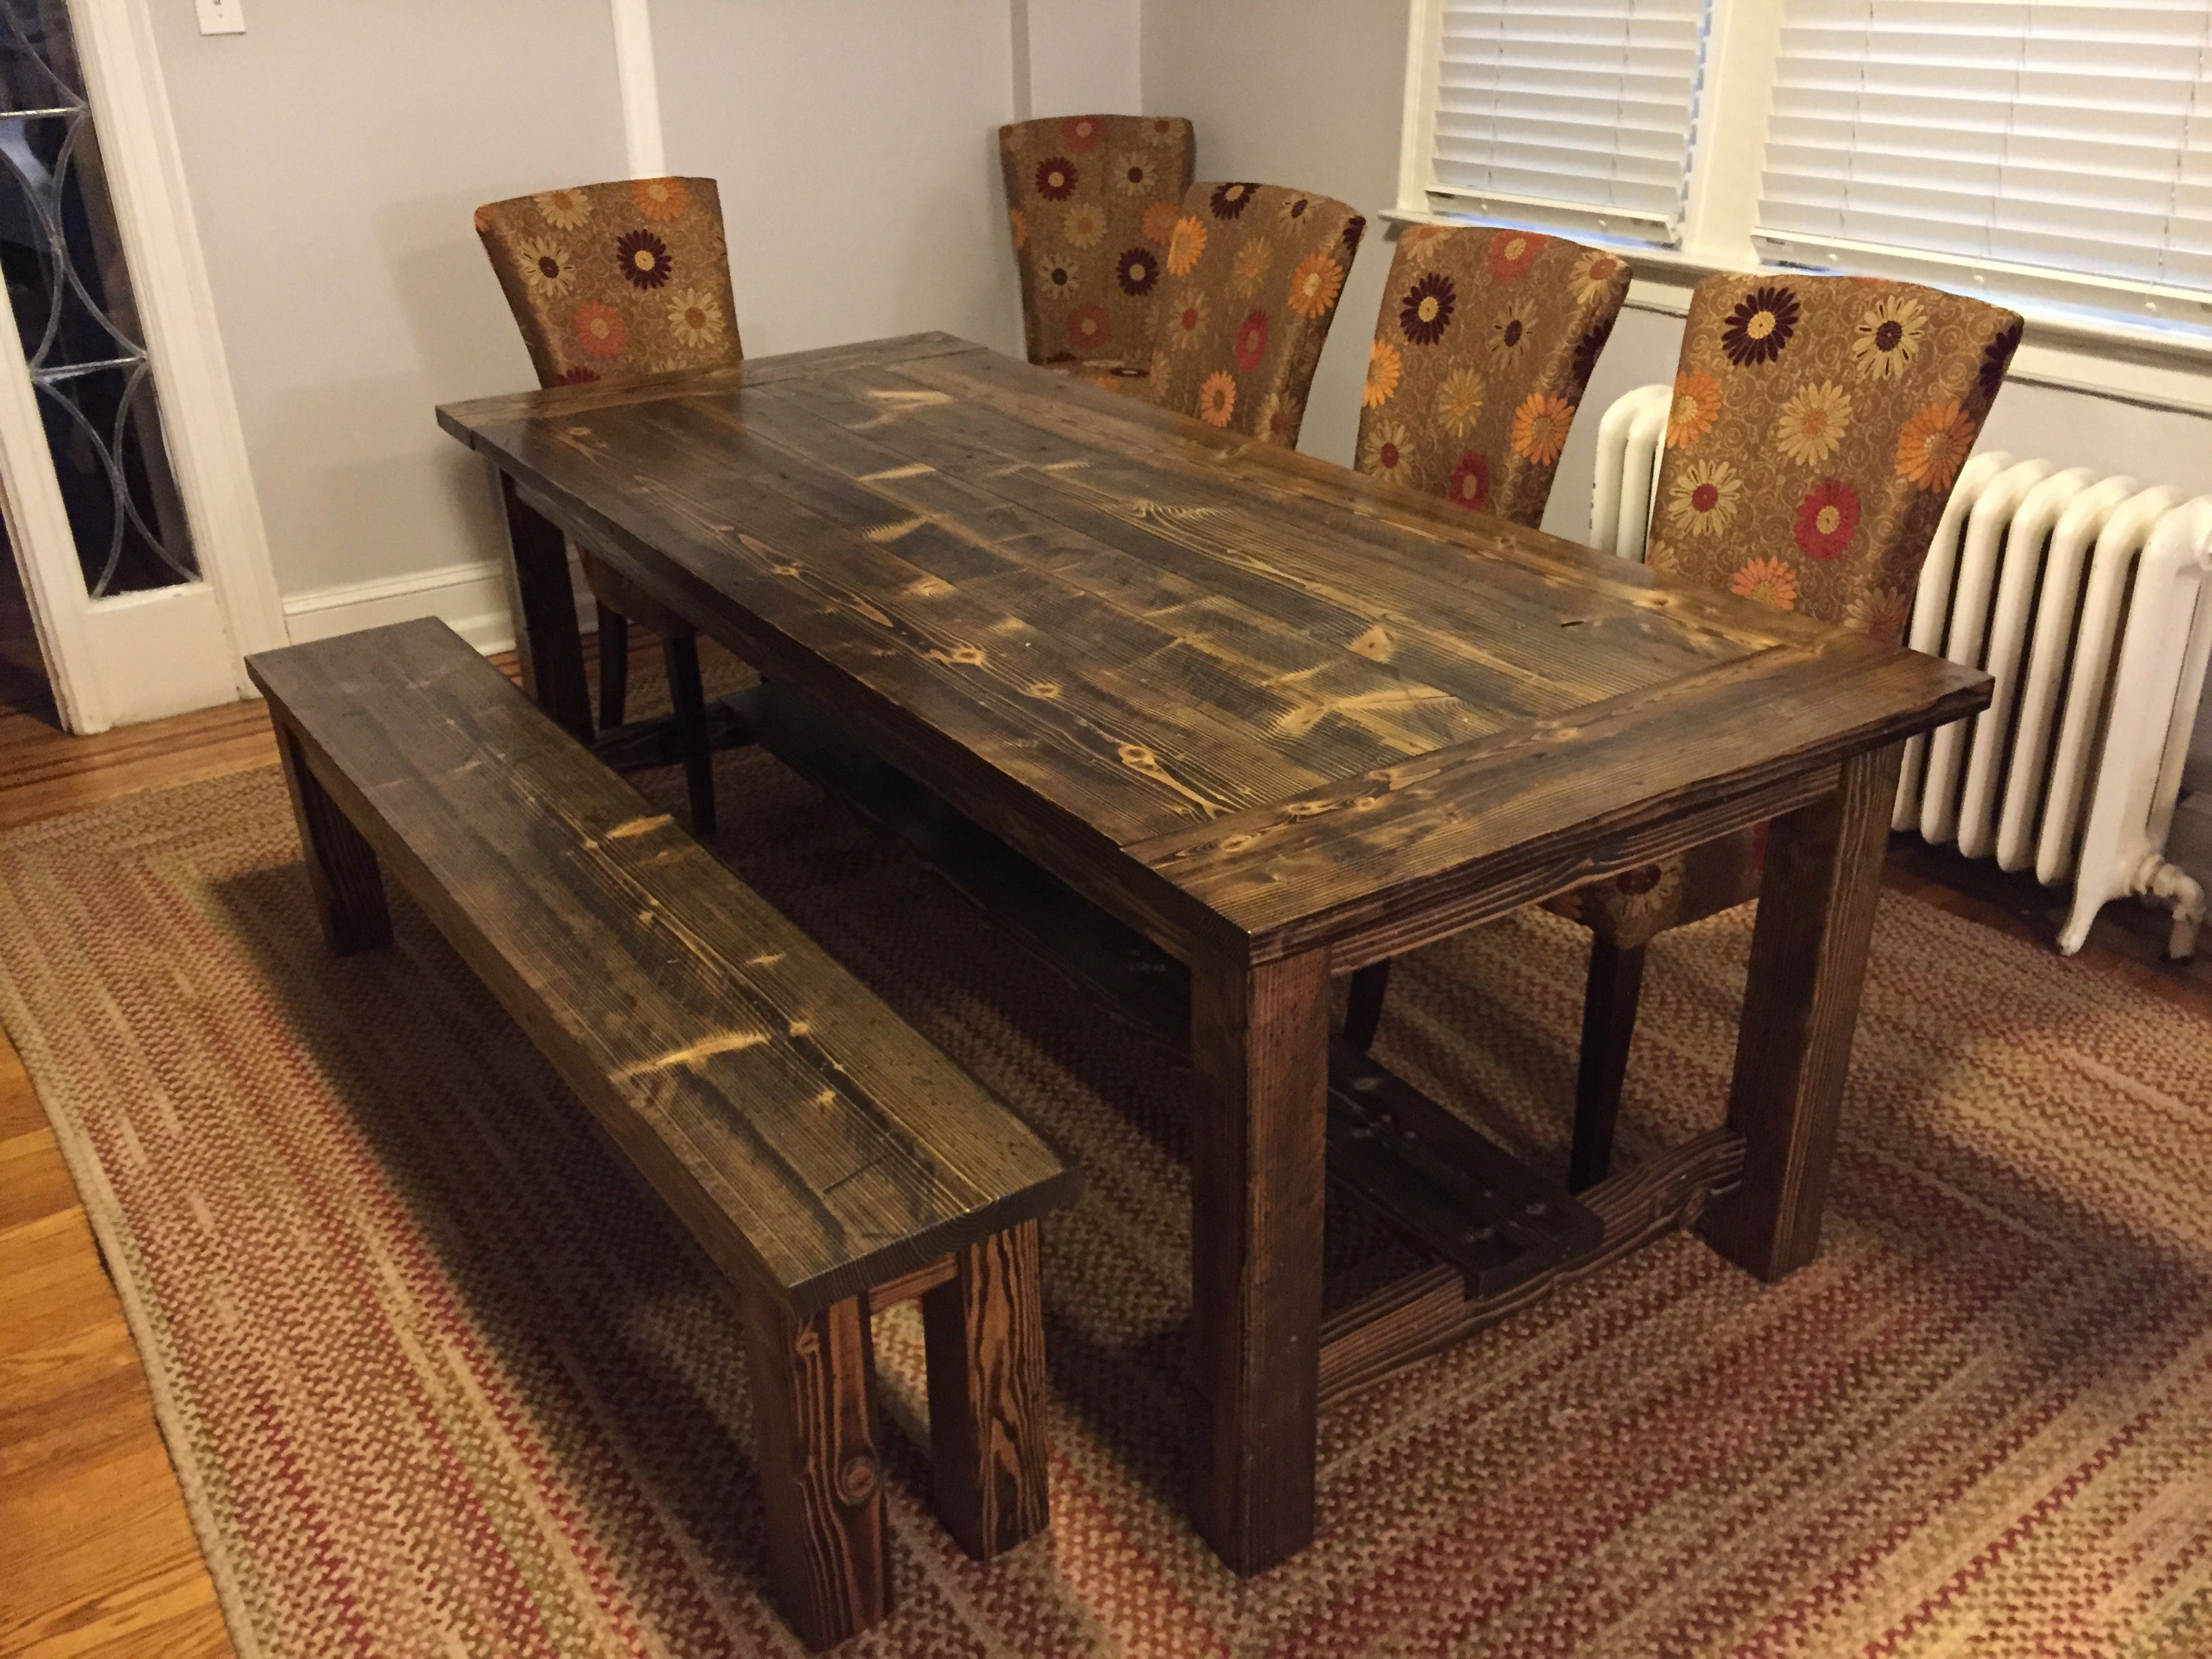 solid wood kitchen tables Solid wood farmhouse table with stretchers and breadboards Matching wooden bench Distressed Dark Walnut